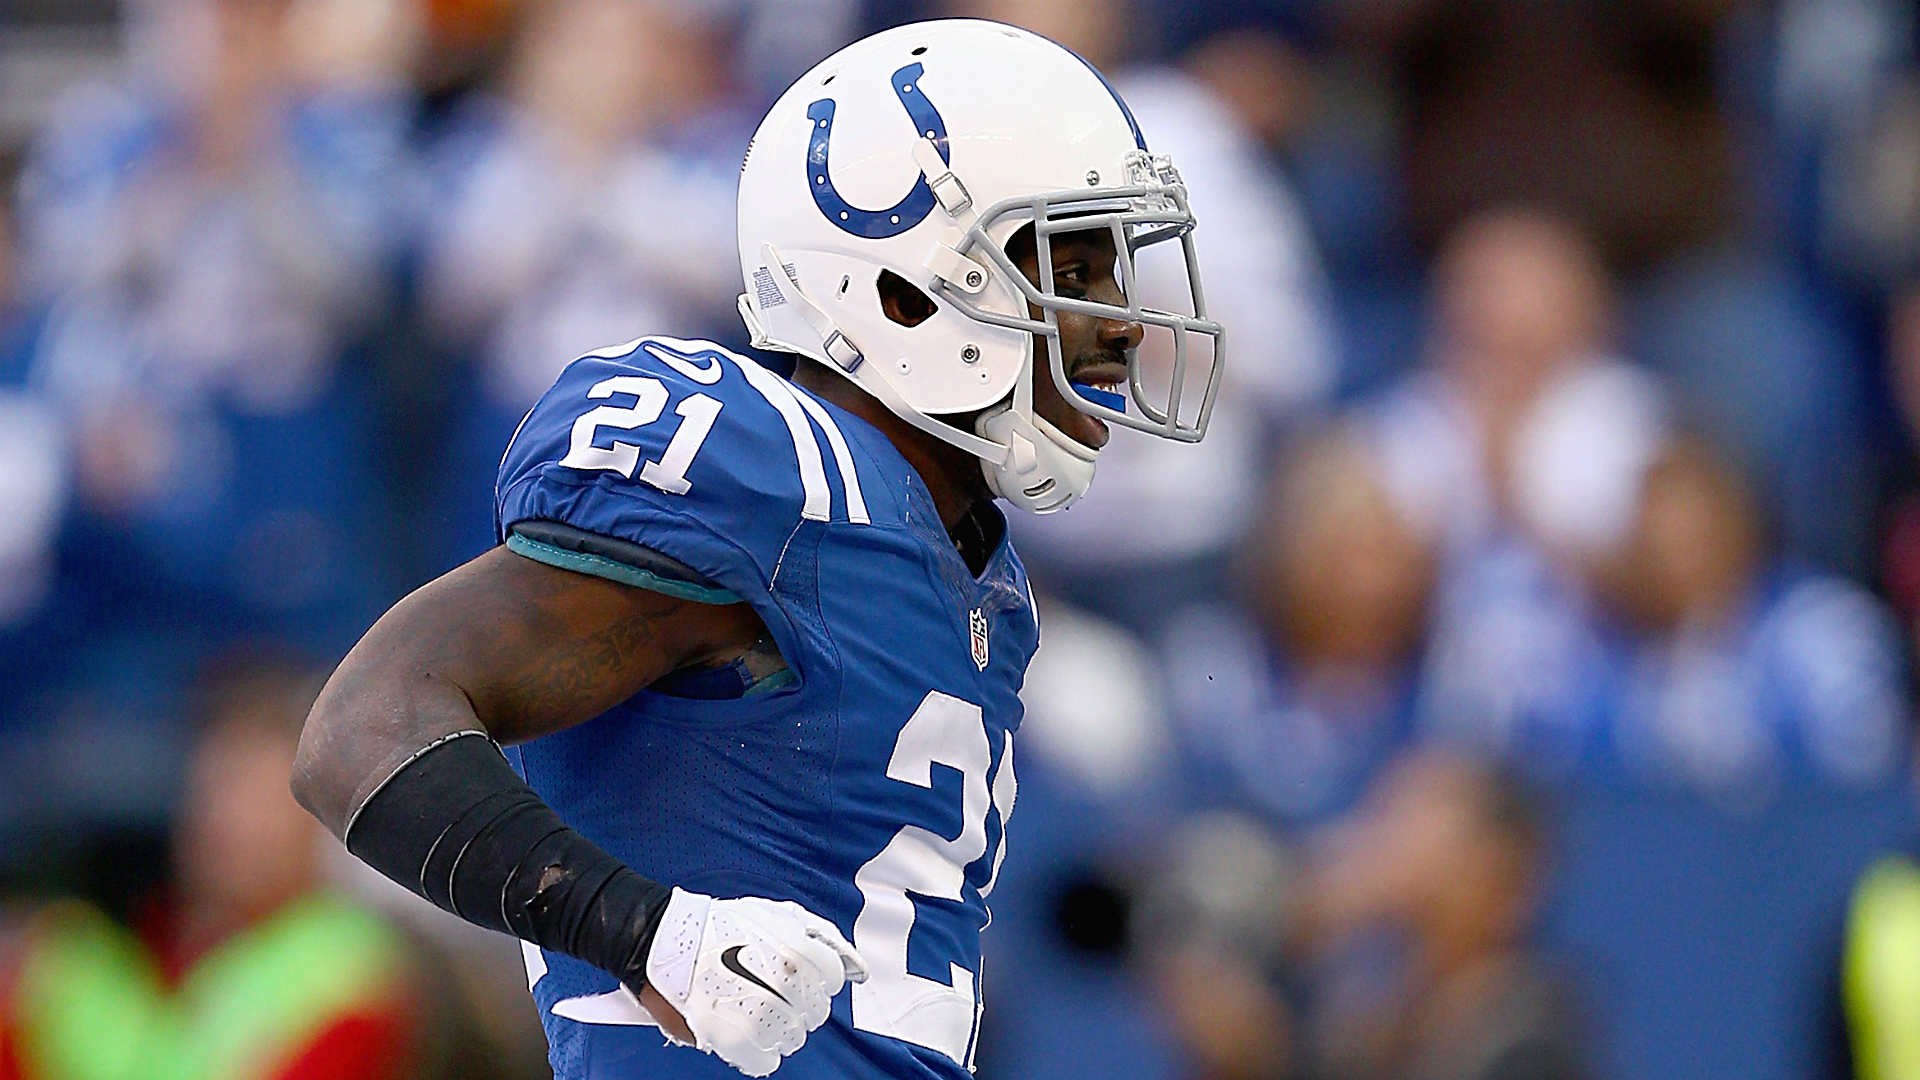 Vontae Davis: Benching shows 'no respect' from Colts